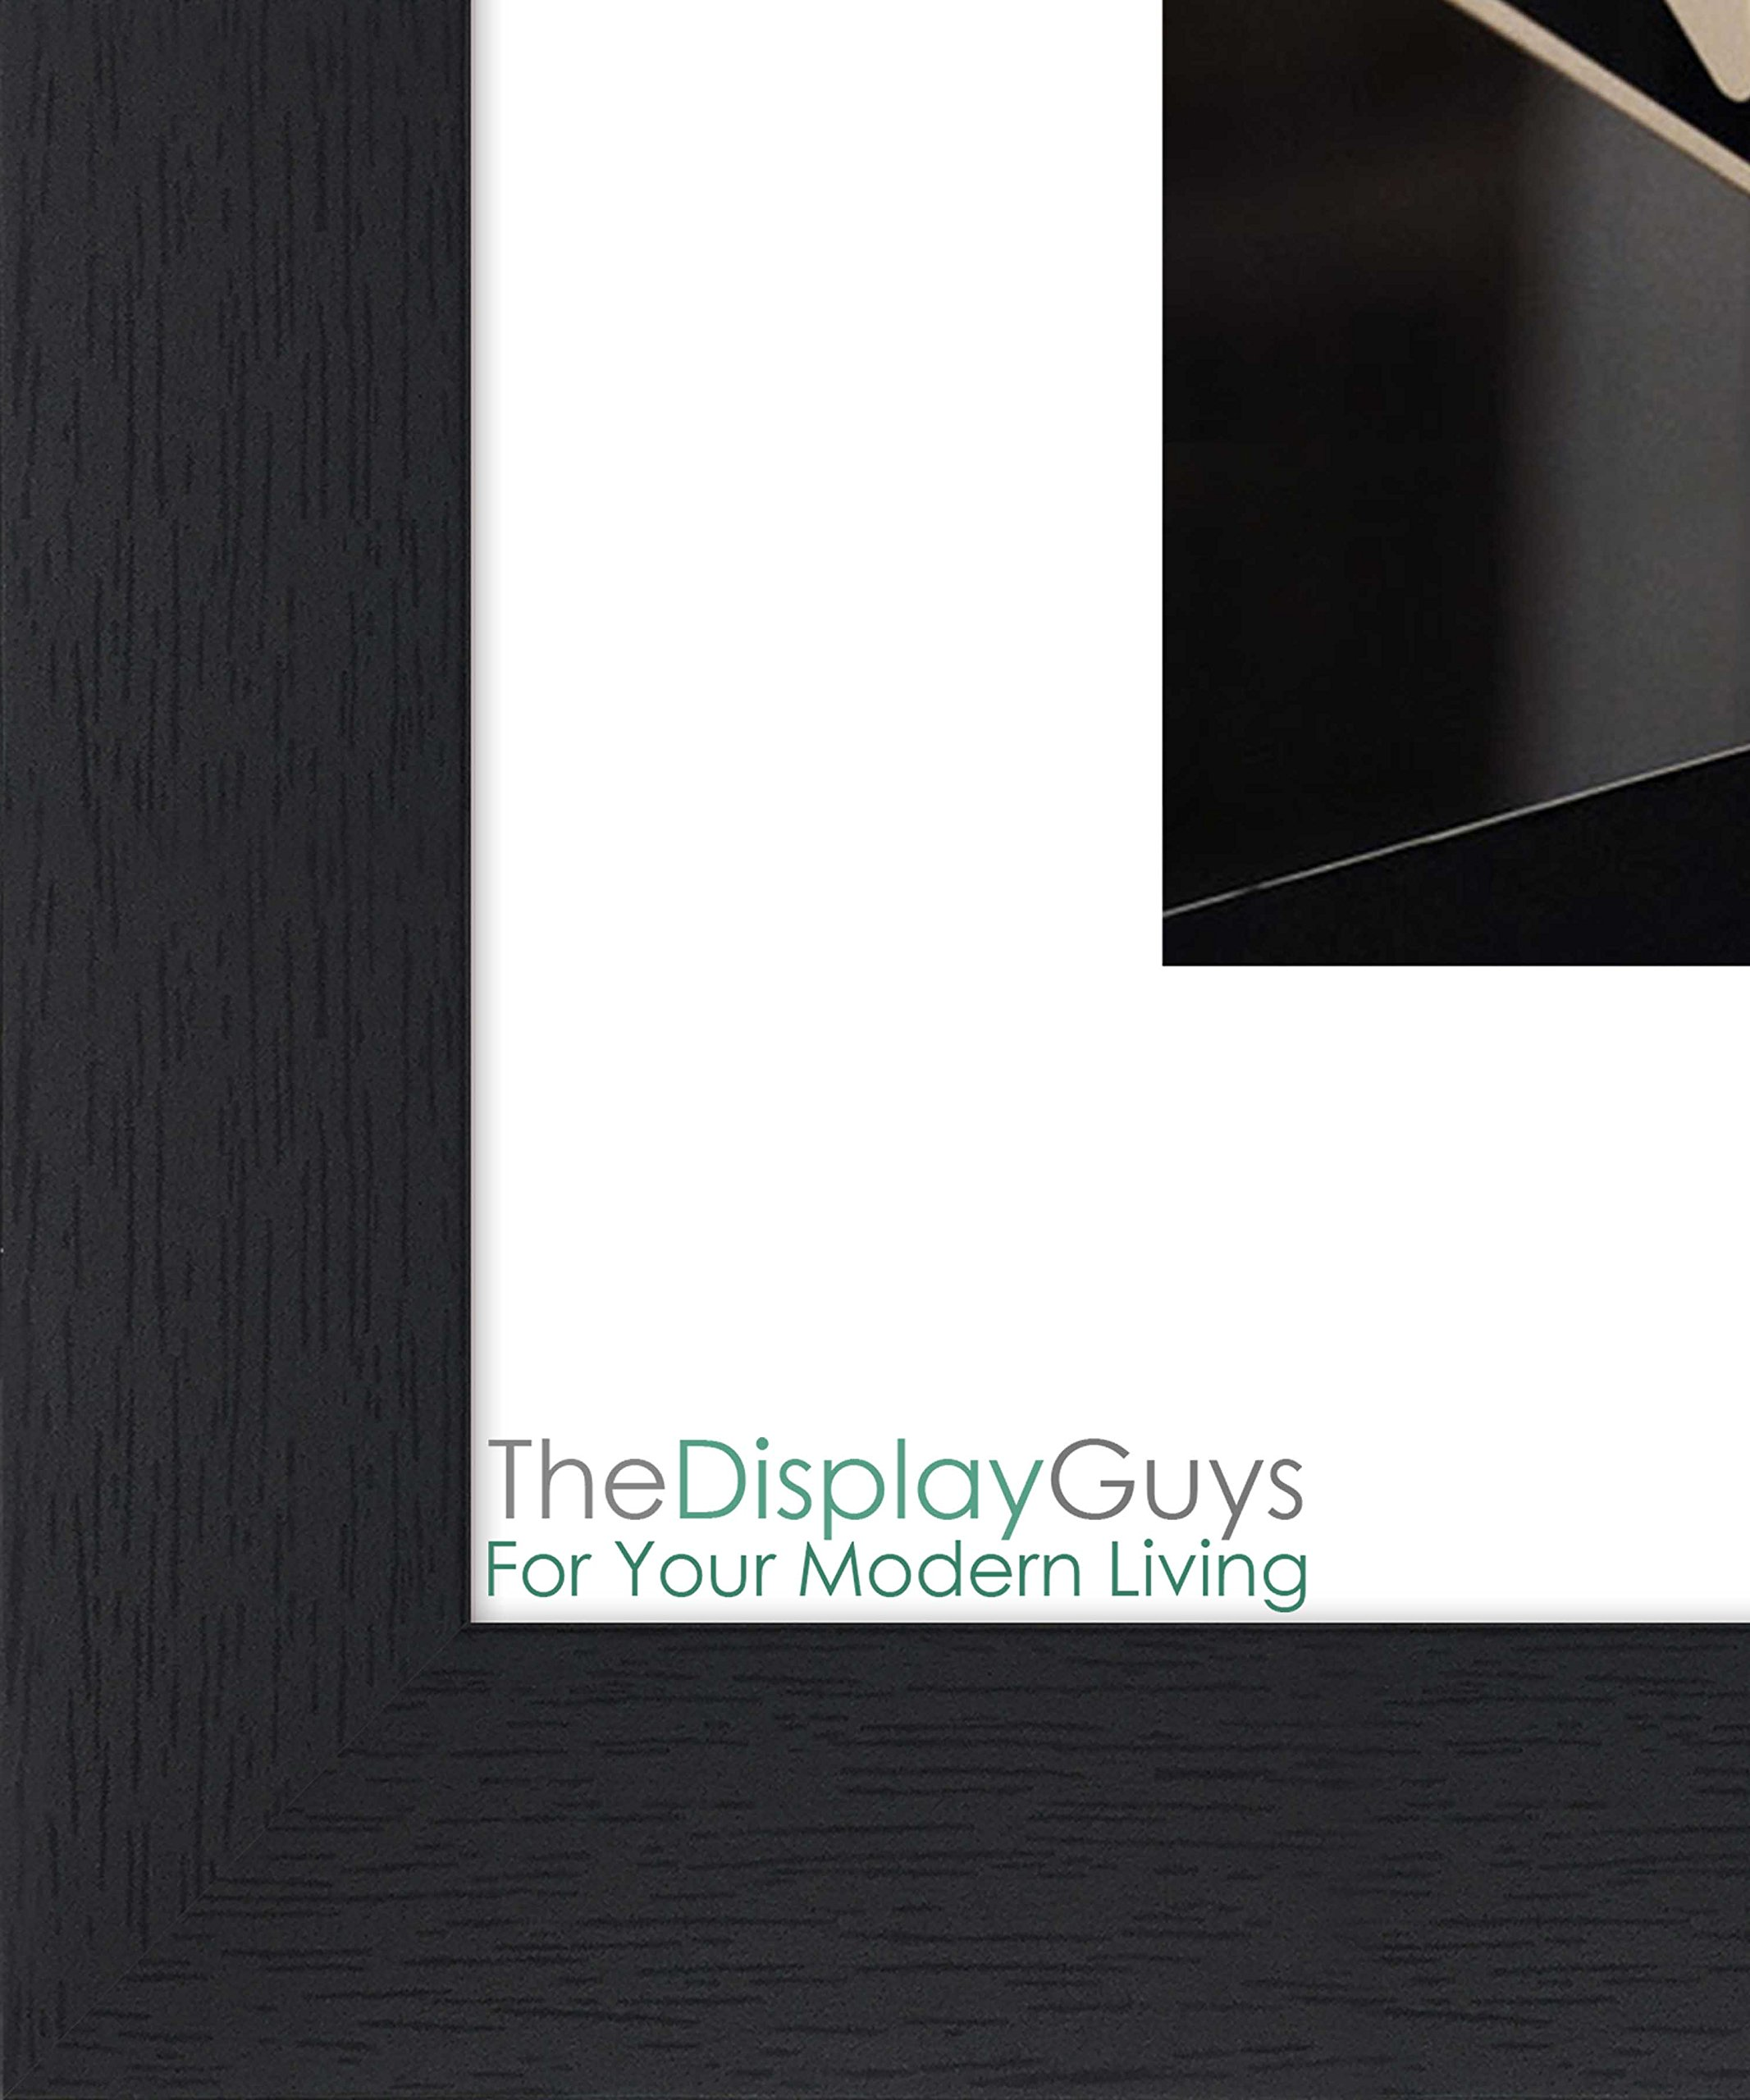 """The Display Guys 4-Openings 4x6 Wooden Collage Picture Frame w. Tempered Glass & Off-White/Ivory Mat (Black) 1"""" Border with Woodgrain Texture -  - picture-frames, bedroom-decor, bedroom - 811YaUeGxcL -"""